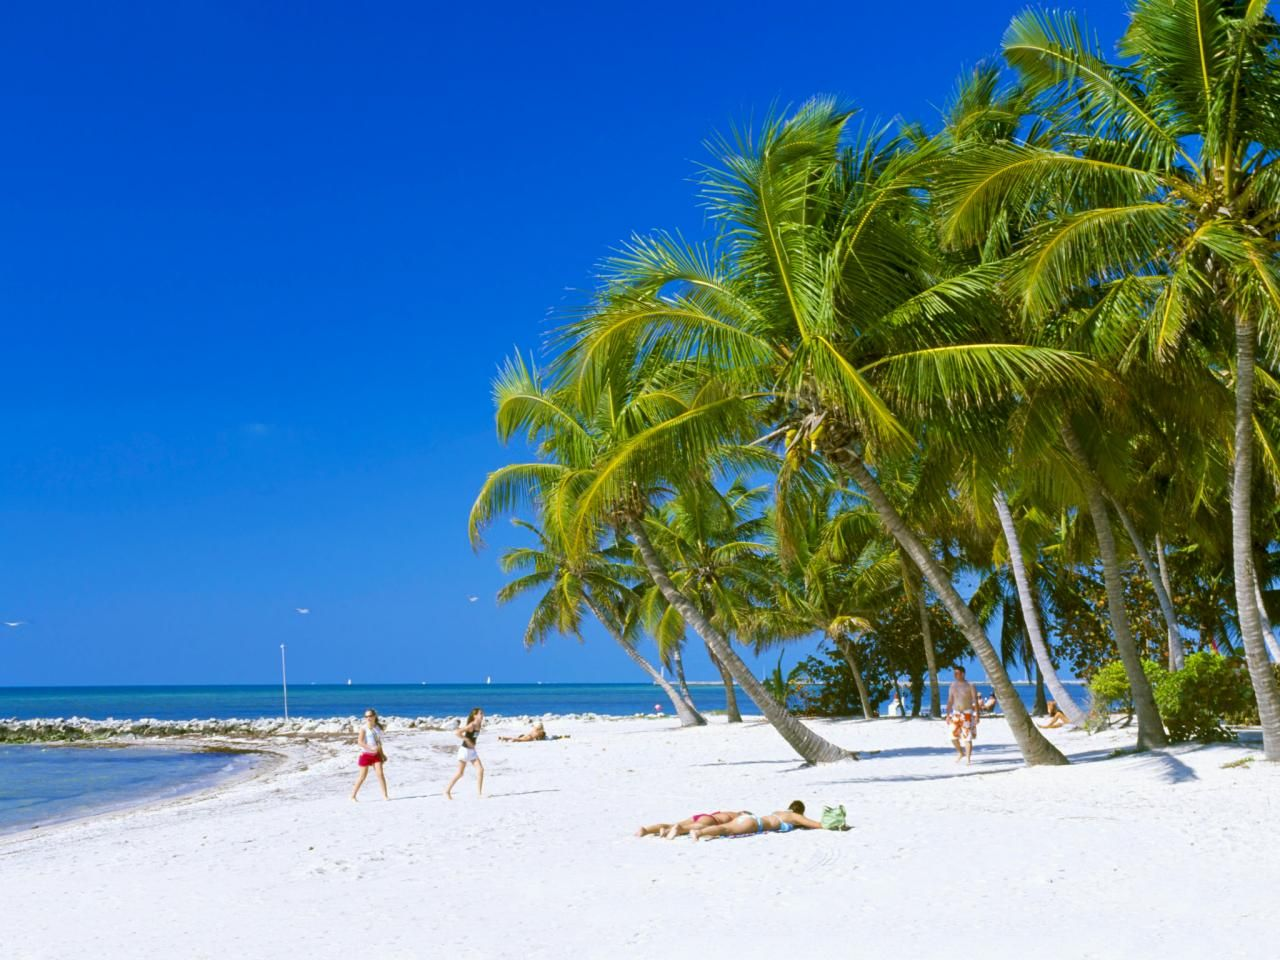 The Beaches In Key West Are Ideal For Swimming And Snorkeling Fishing Is Allowed